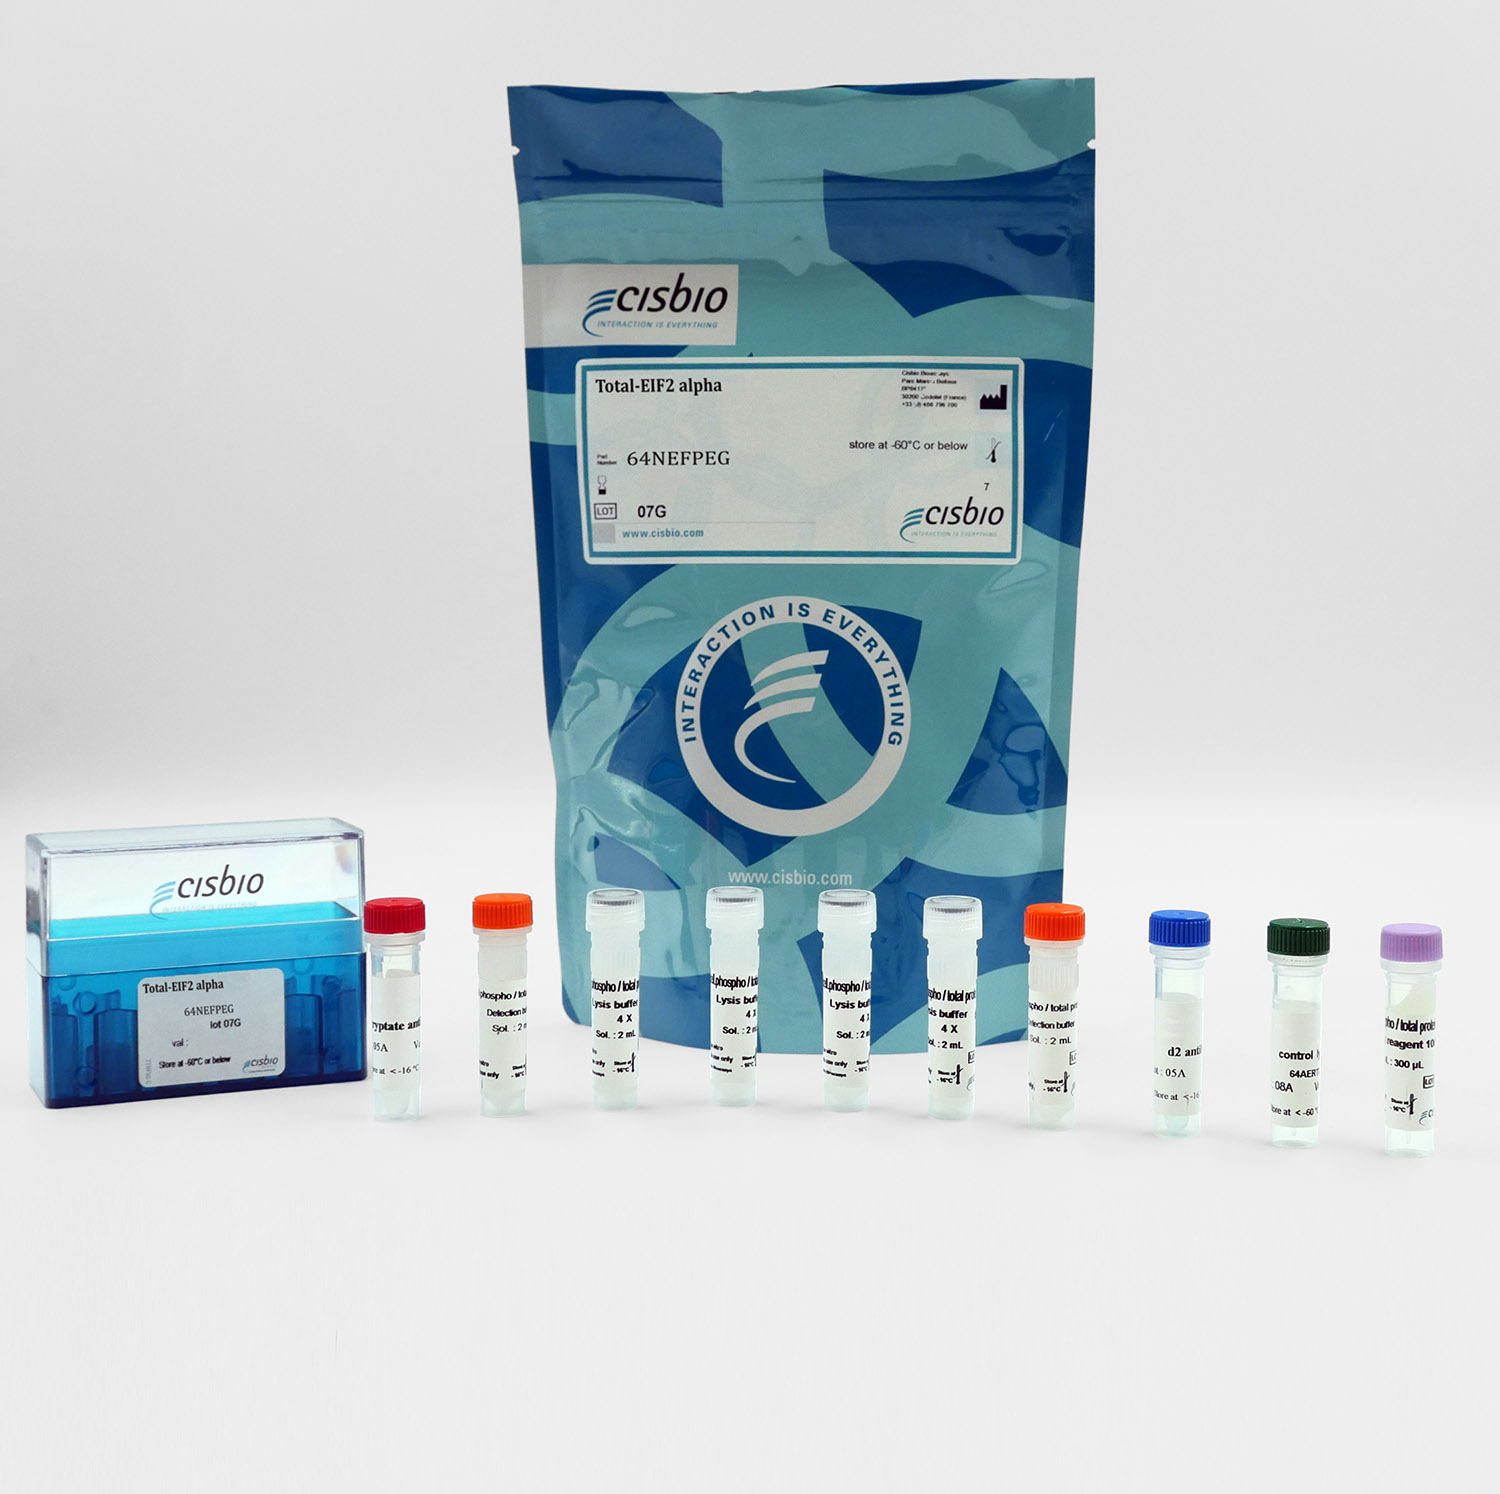 Total EIF2 alpha cellular kit